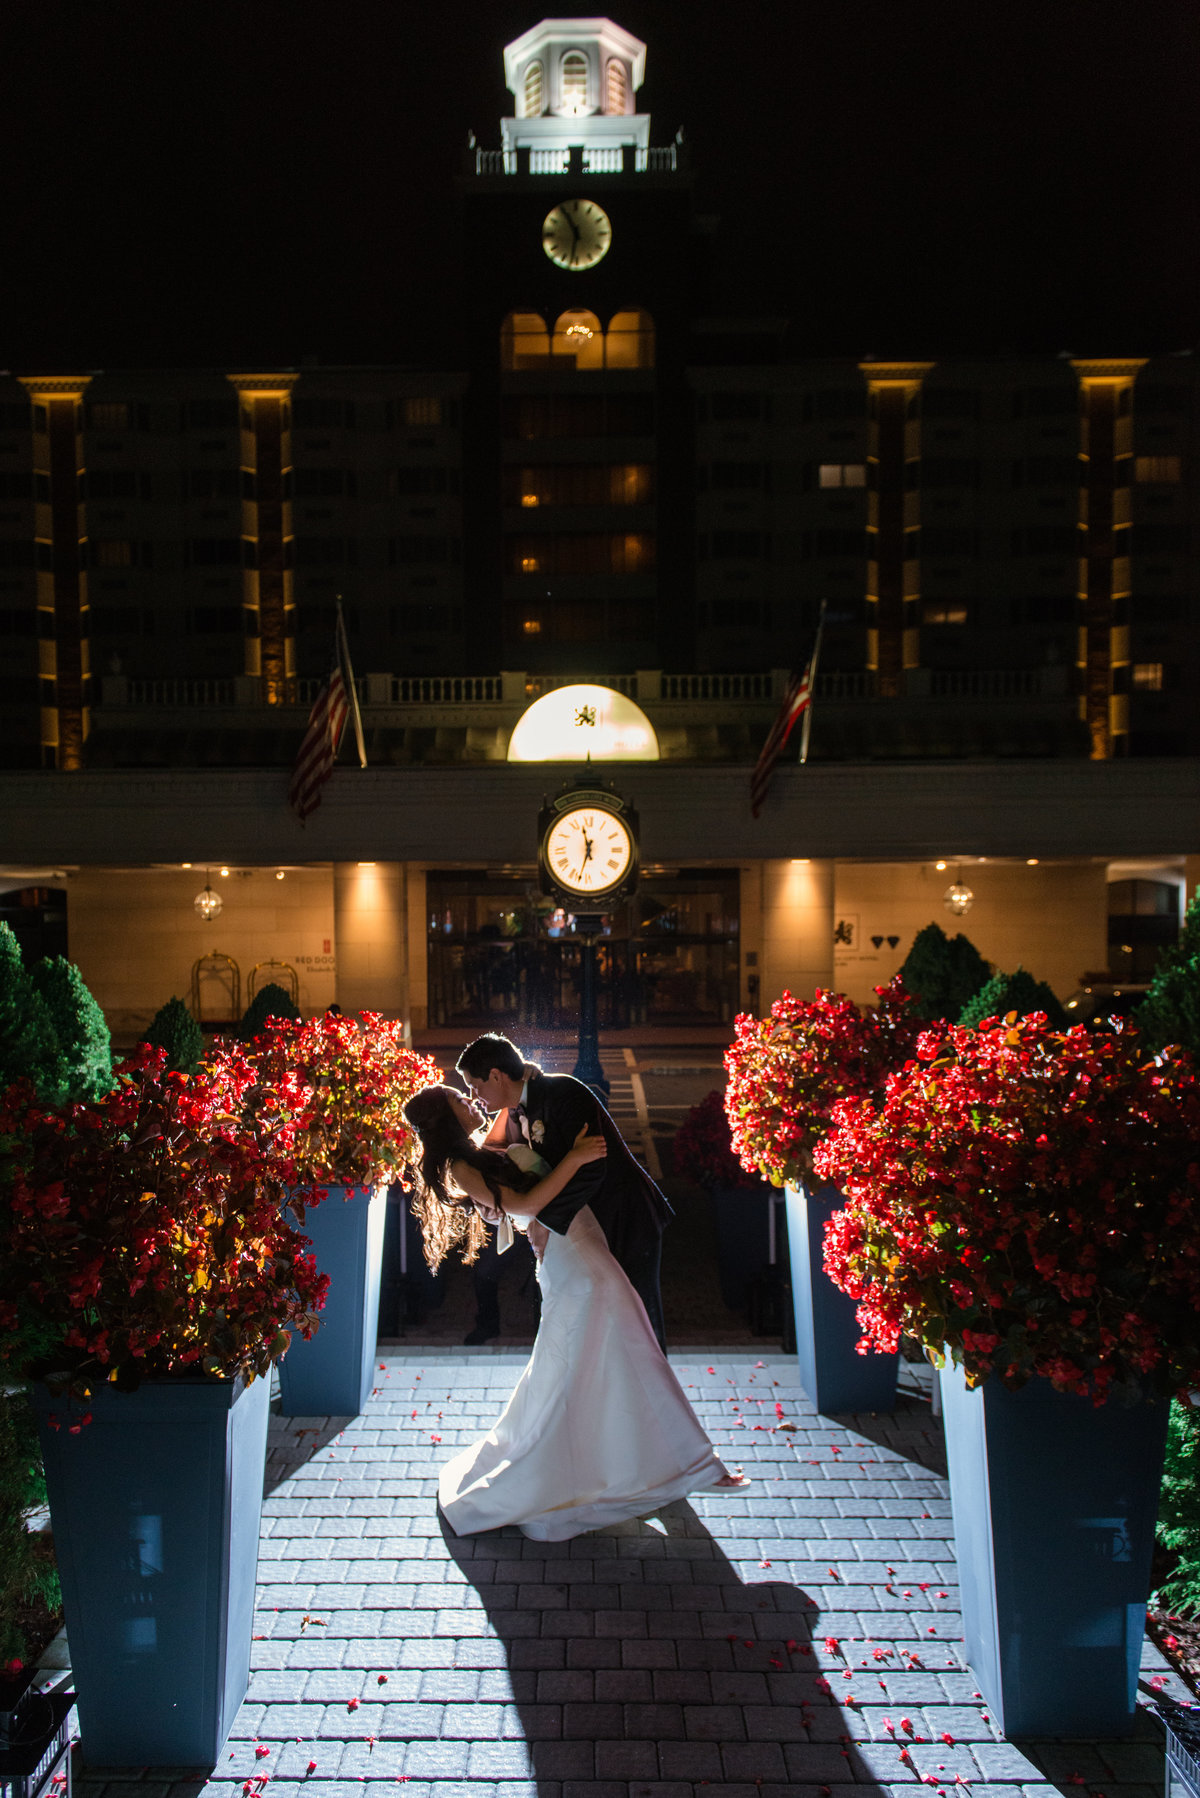 night shot of bride and groom outdoors during wedding at The Garden City Hotel